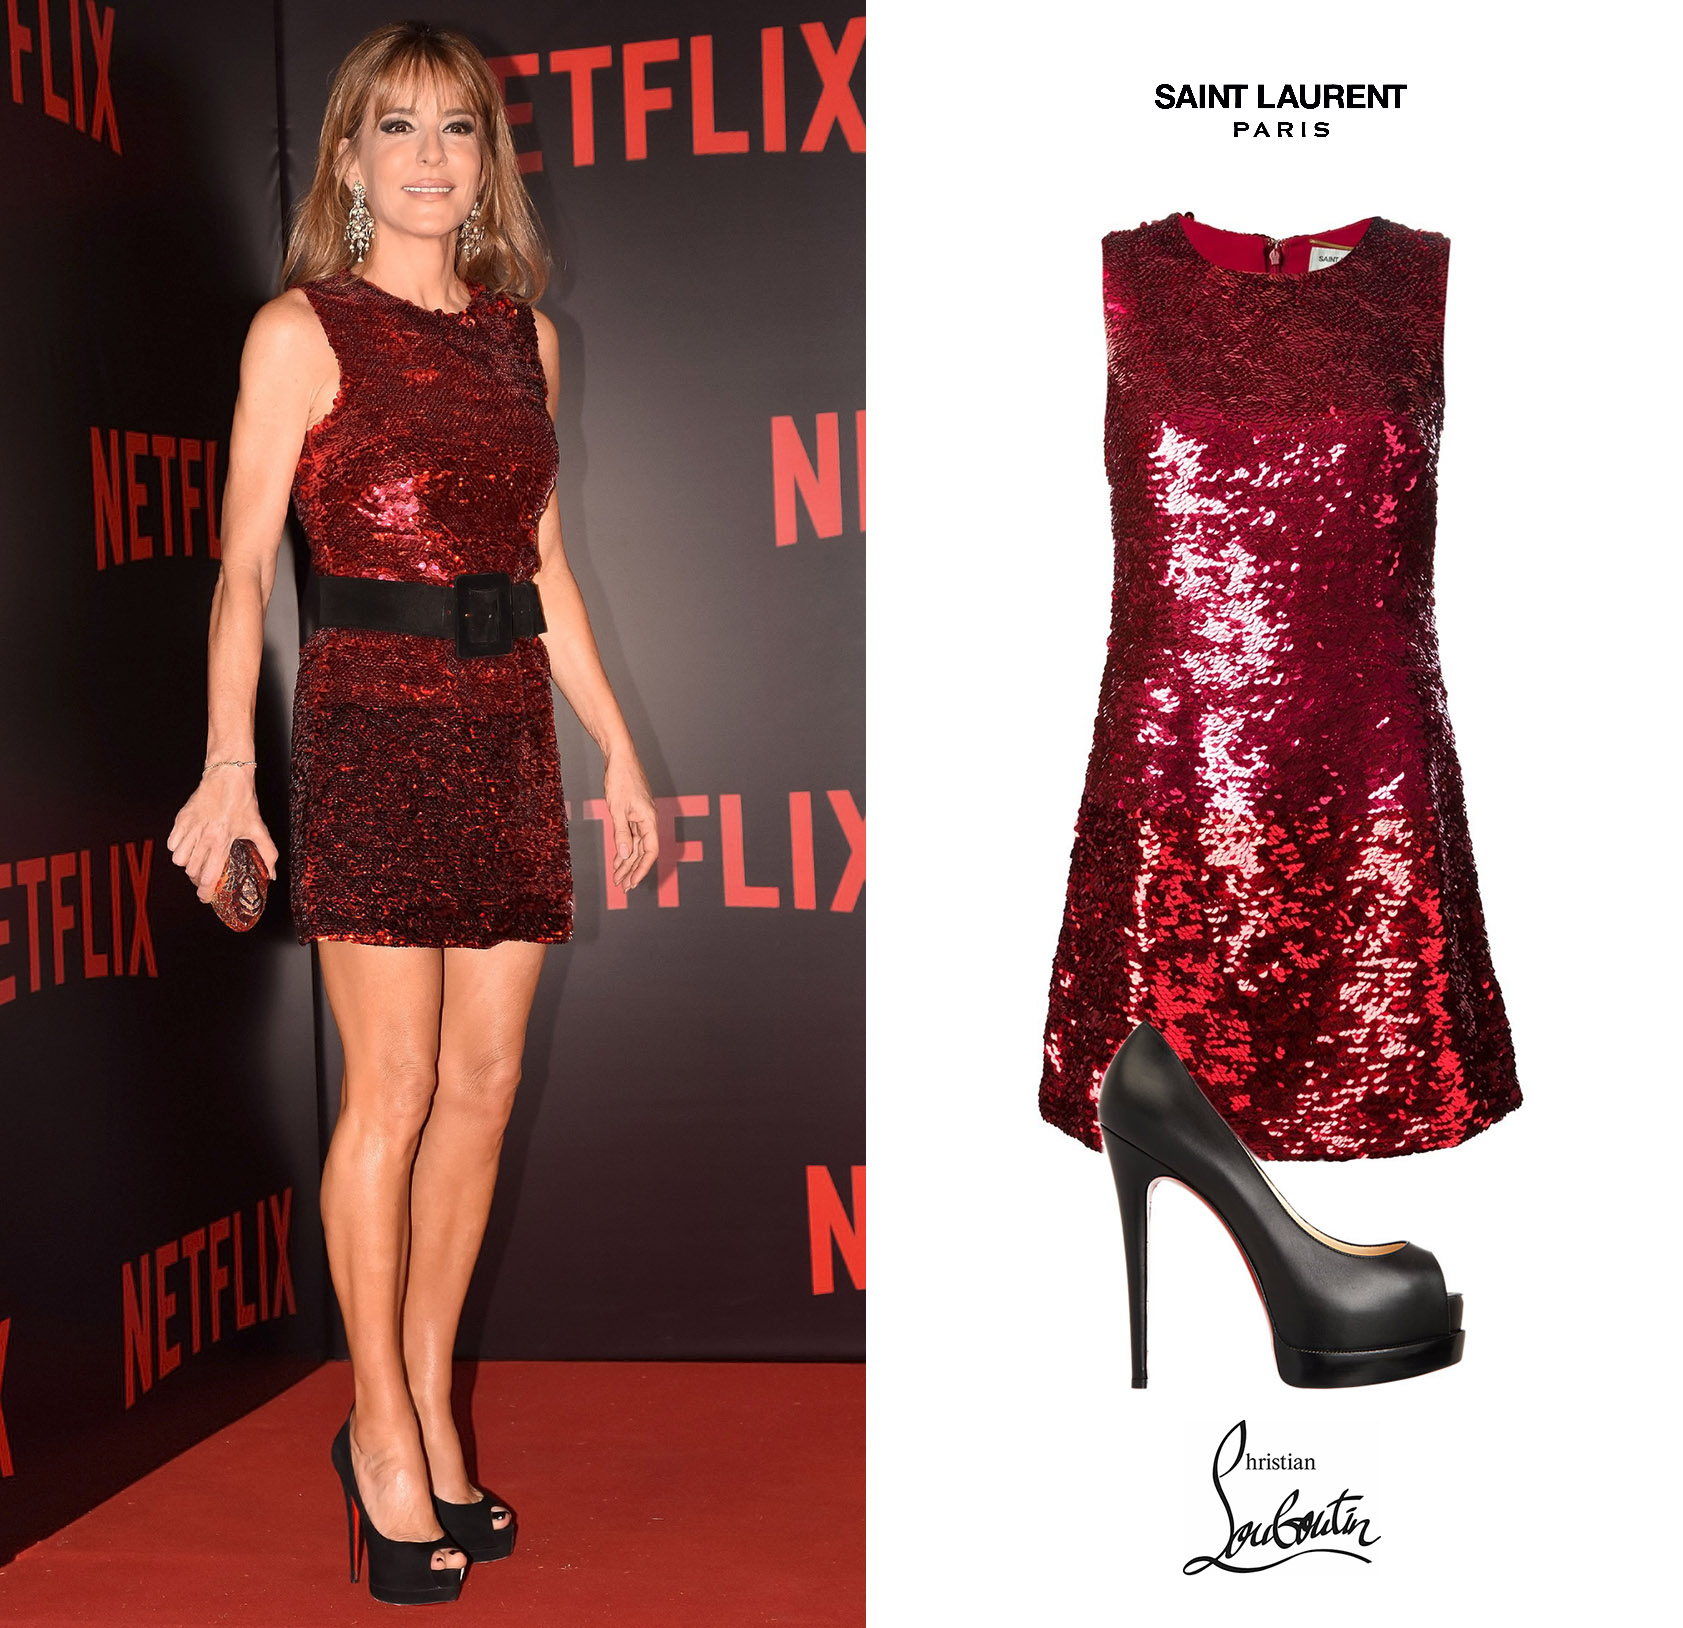 Patricia-Della-Giovampaola-DArenberg-Netflix-Gala-Buenos-Aires-Saint-Laurent-Sequined-Paillettes-Dress-Vestido-Rojo-Christian-Louboutin-Palais-Royal-Platfrom-Peep-Toes.jpg